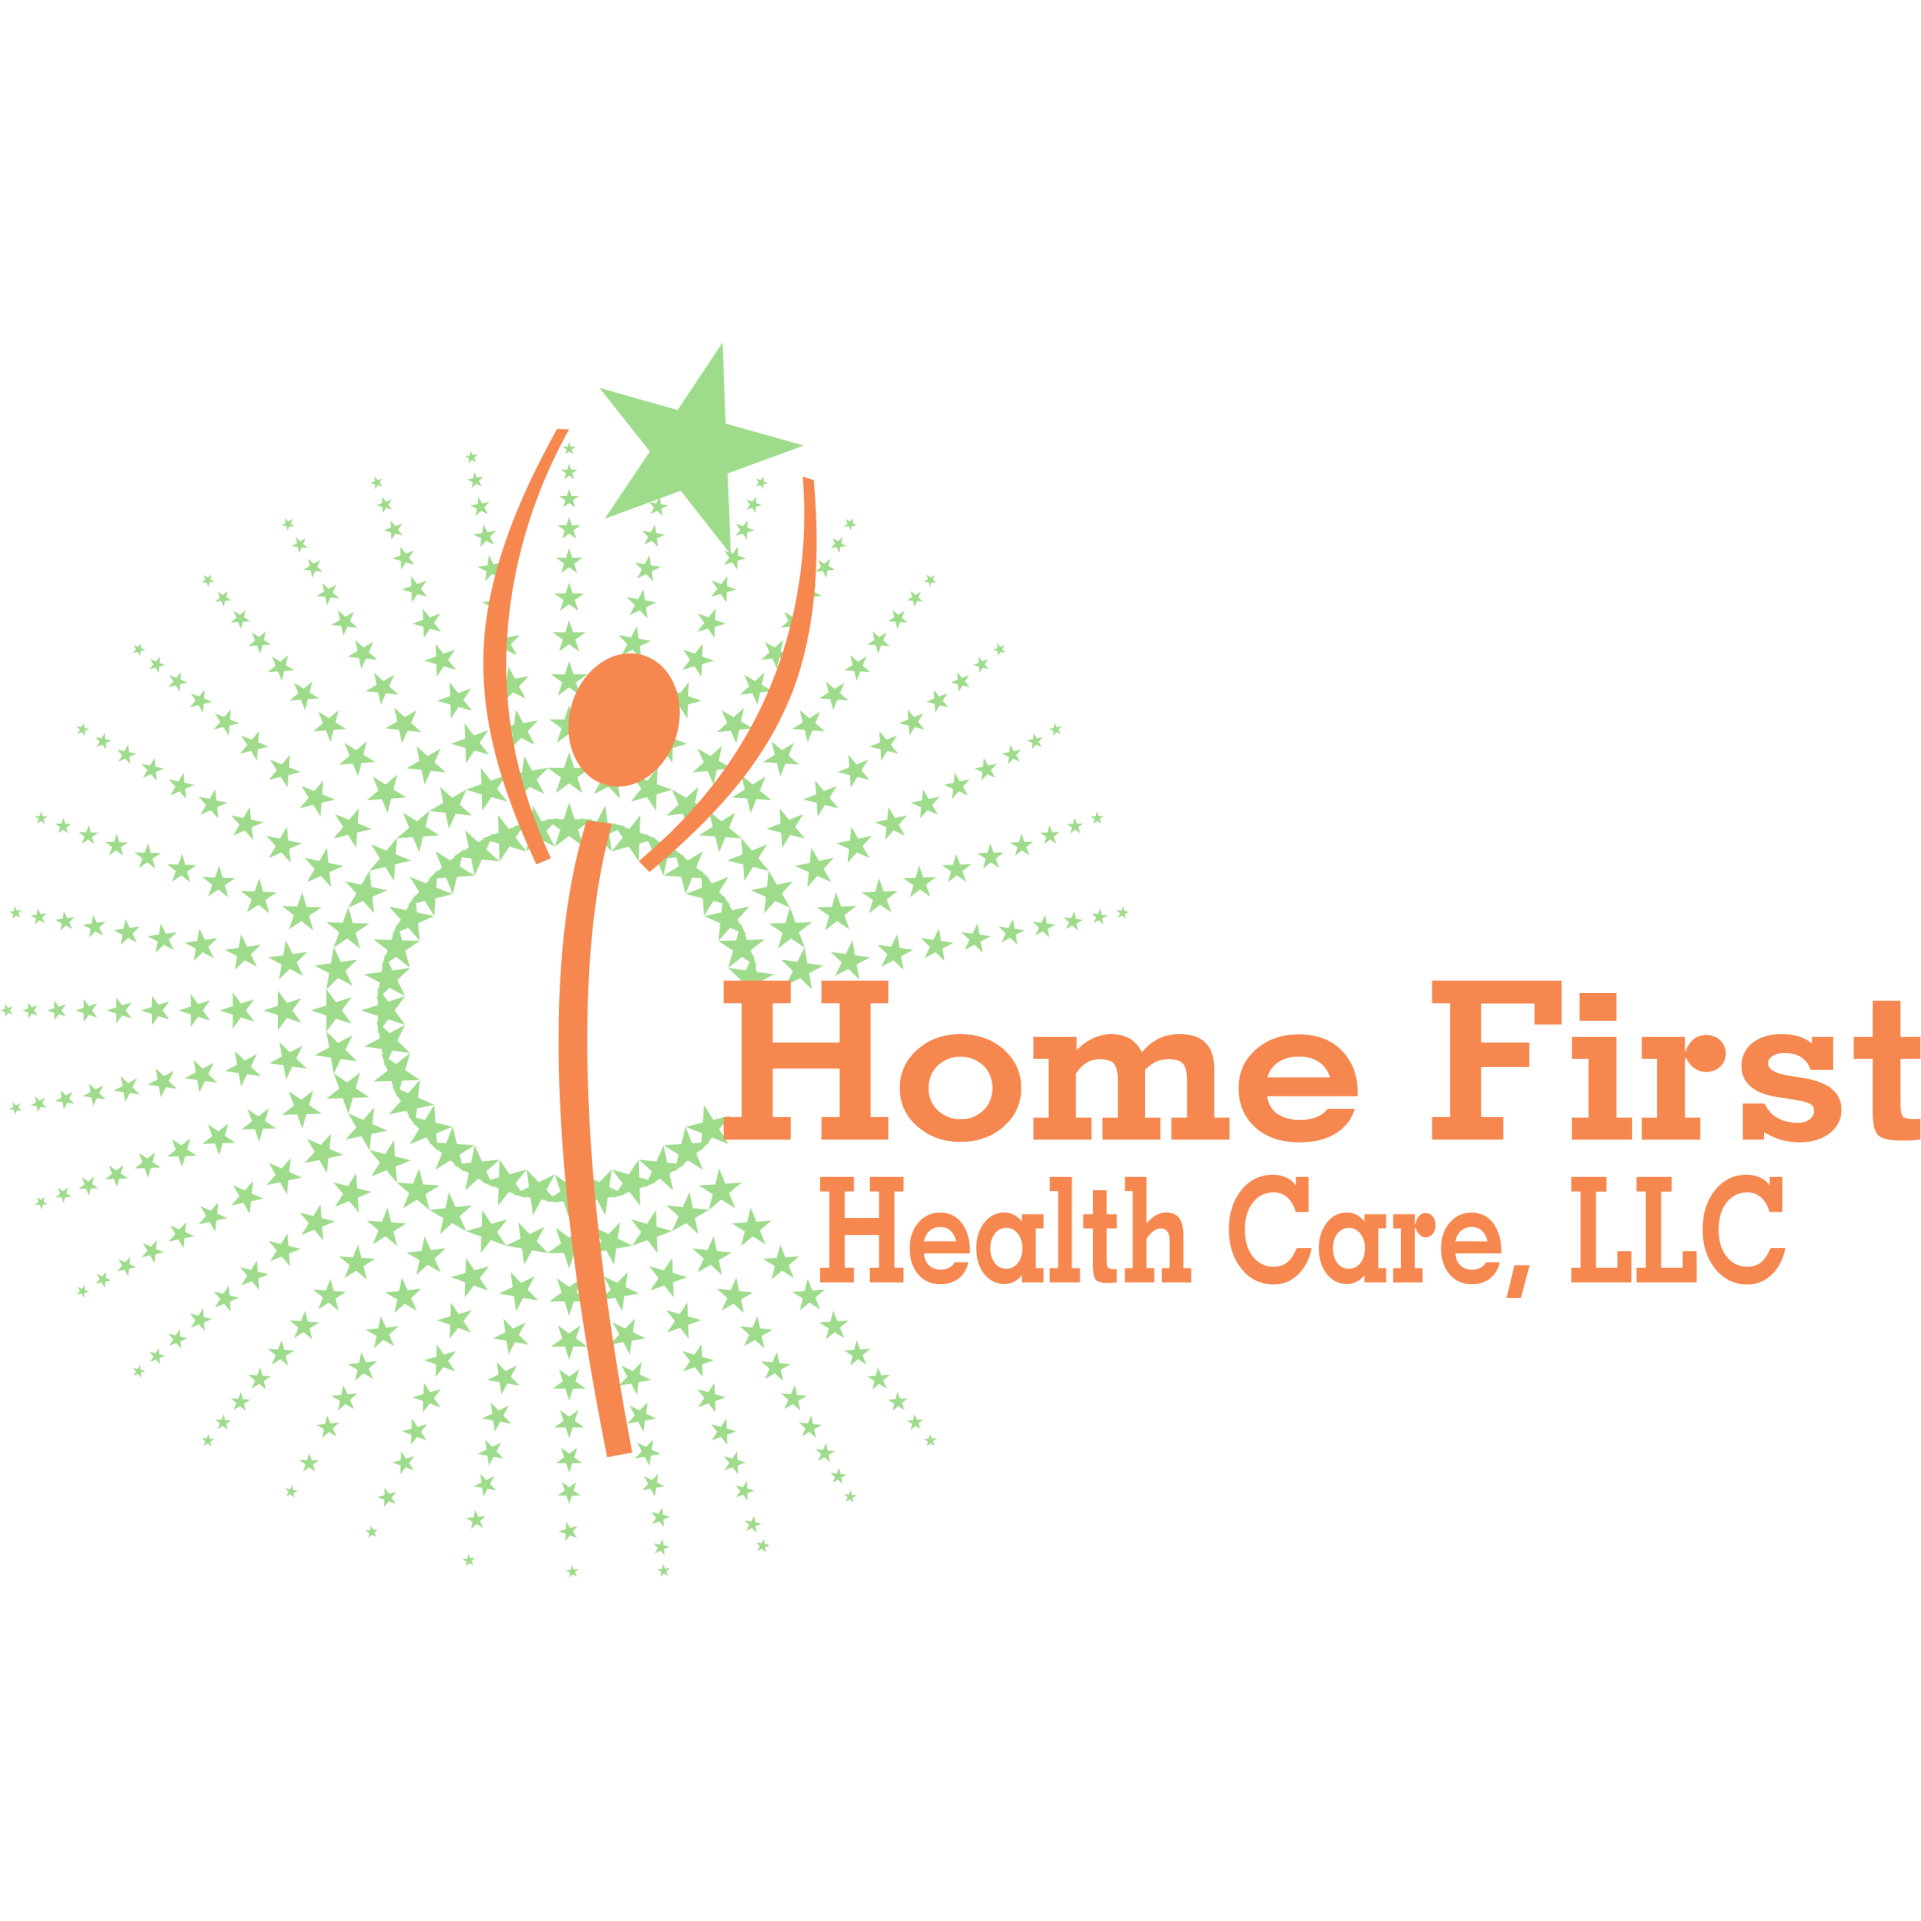 image of Home First Healthcare LLC